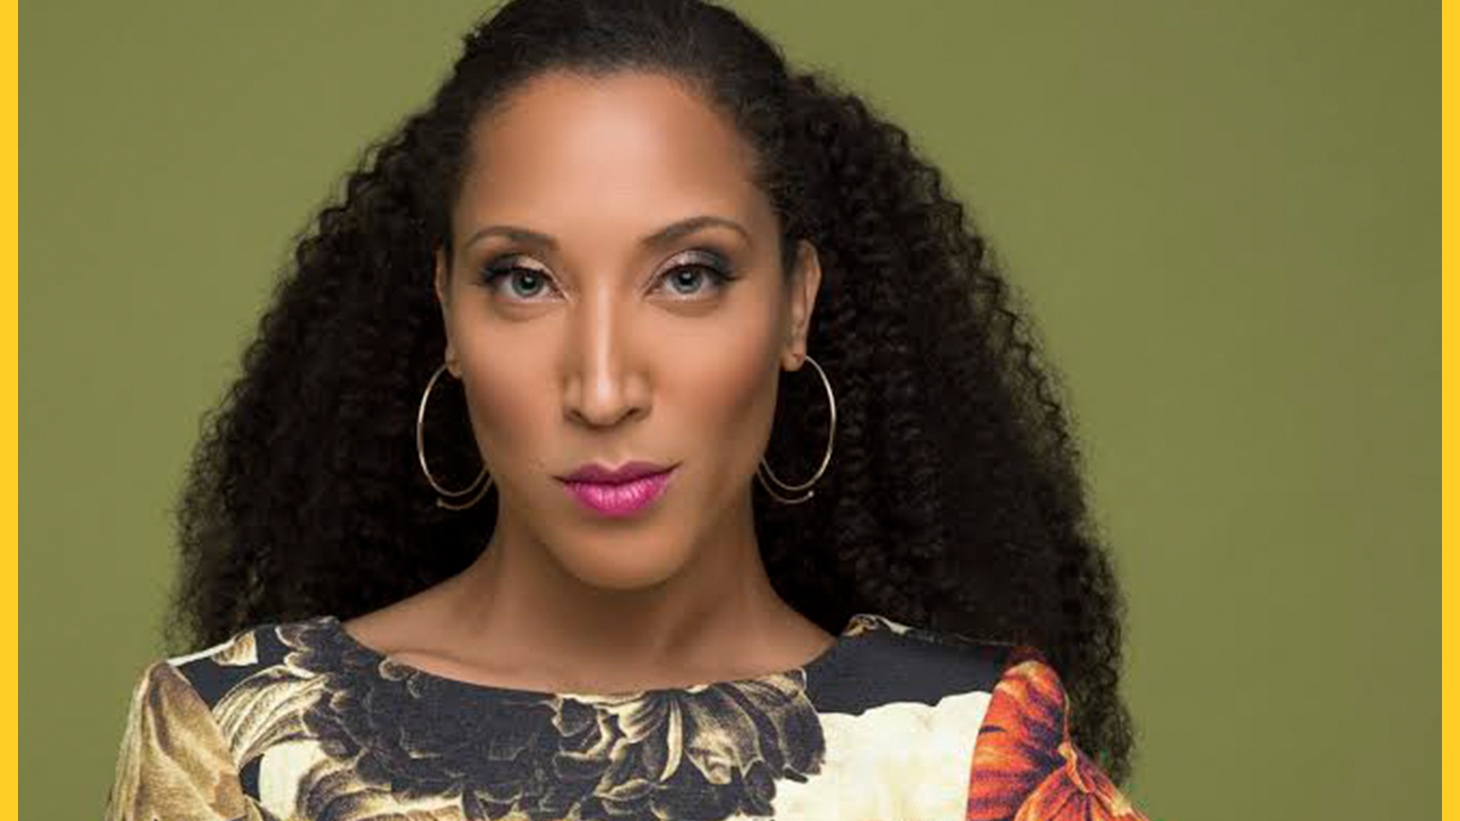 Robin Thede broke new late night ground with her excellent (and widely adopted) show The Rundown on BET. What's next for her and will we ever see a return of The Rundown?